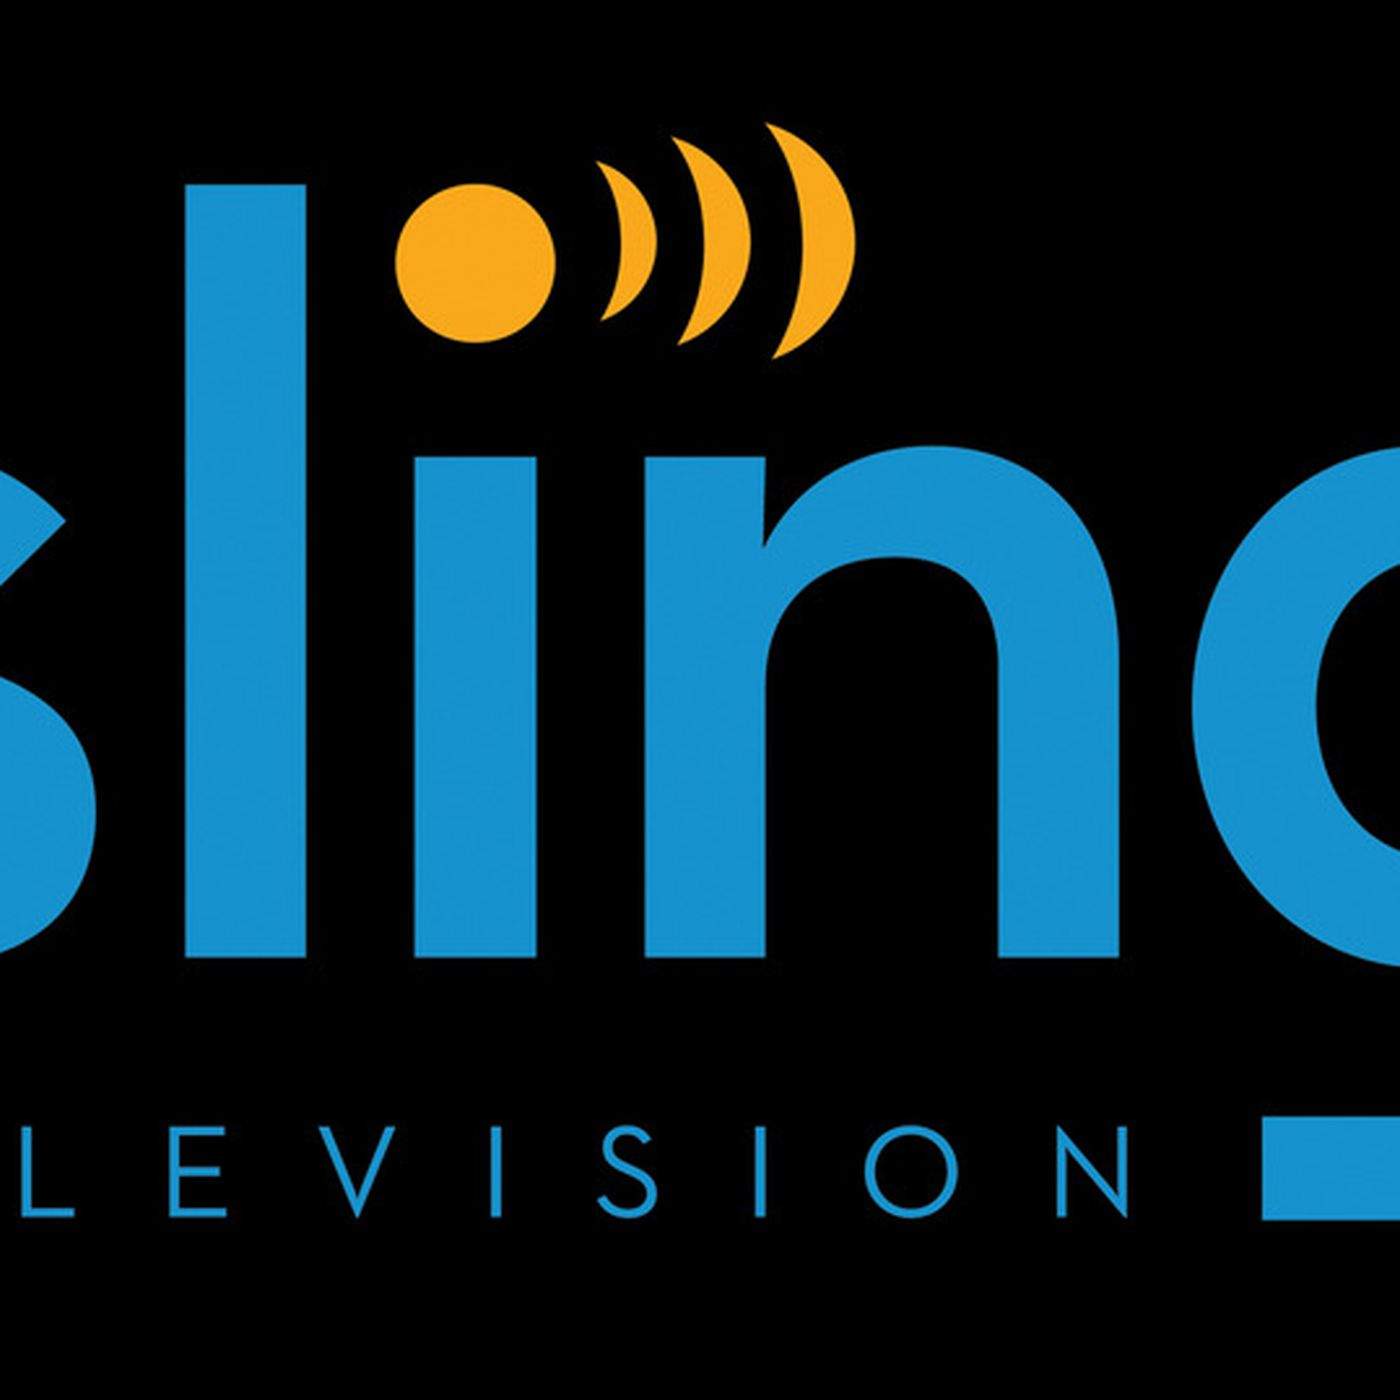 This is Dish s Sling TV an internet TV service that lets you stream